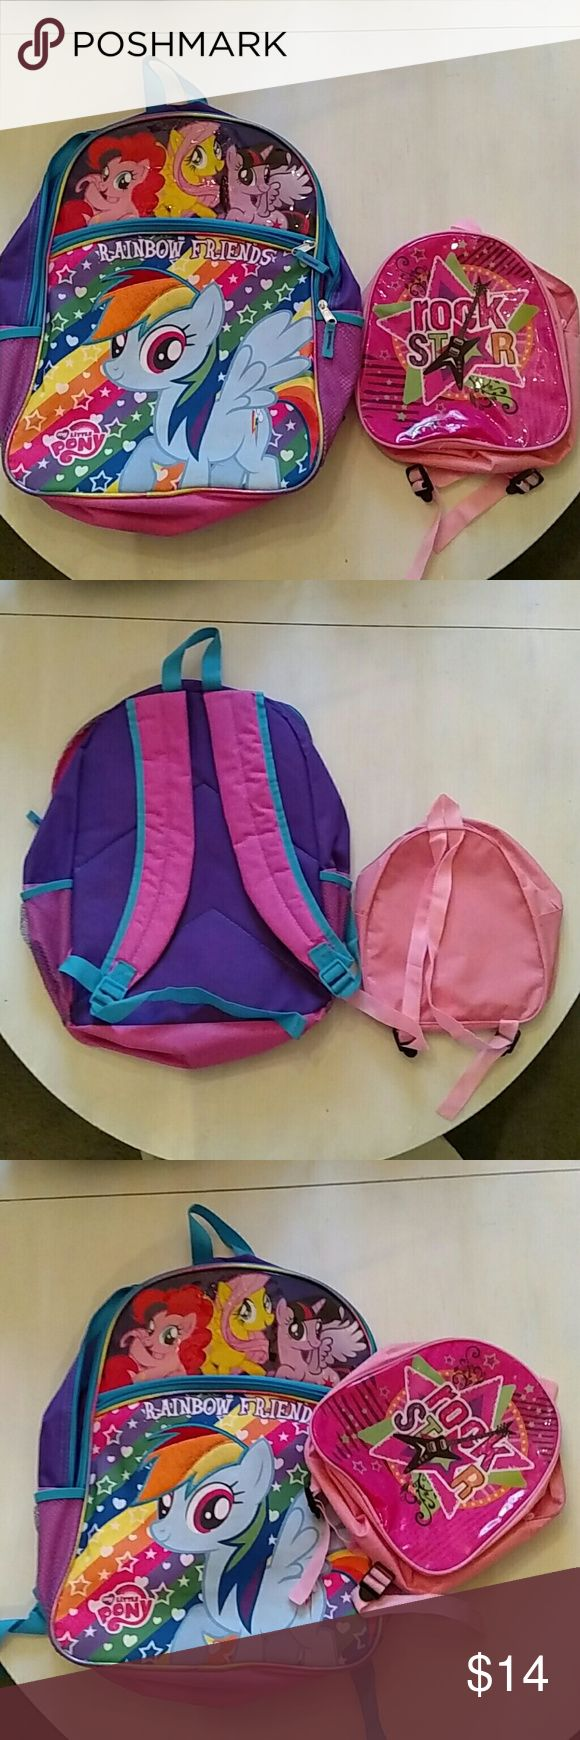 NWOT My little pony and mini rock star backpacks 2 backpacks - full size my Little pony and mini rock star.  Both NWOT My Little Pony Other